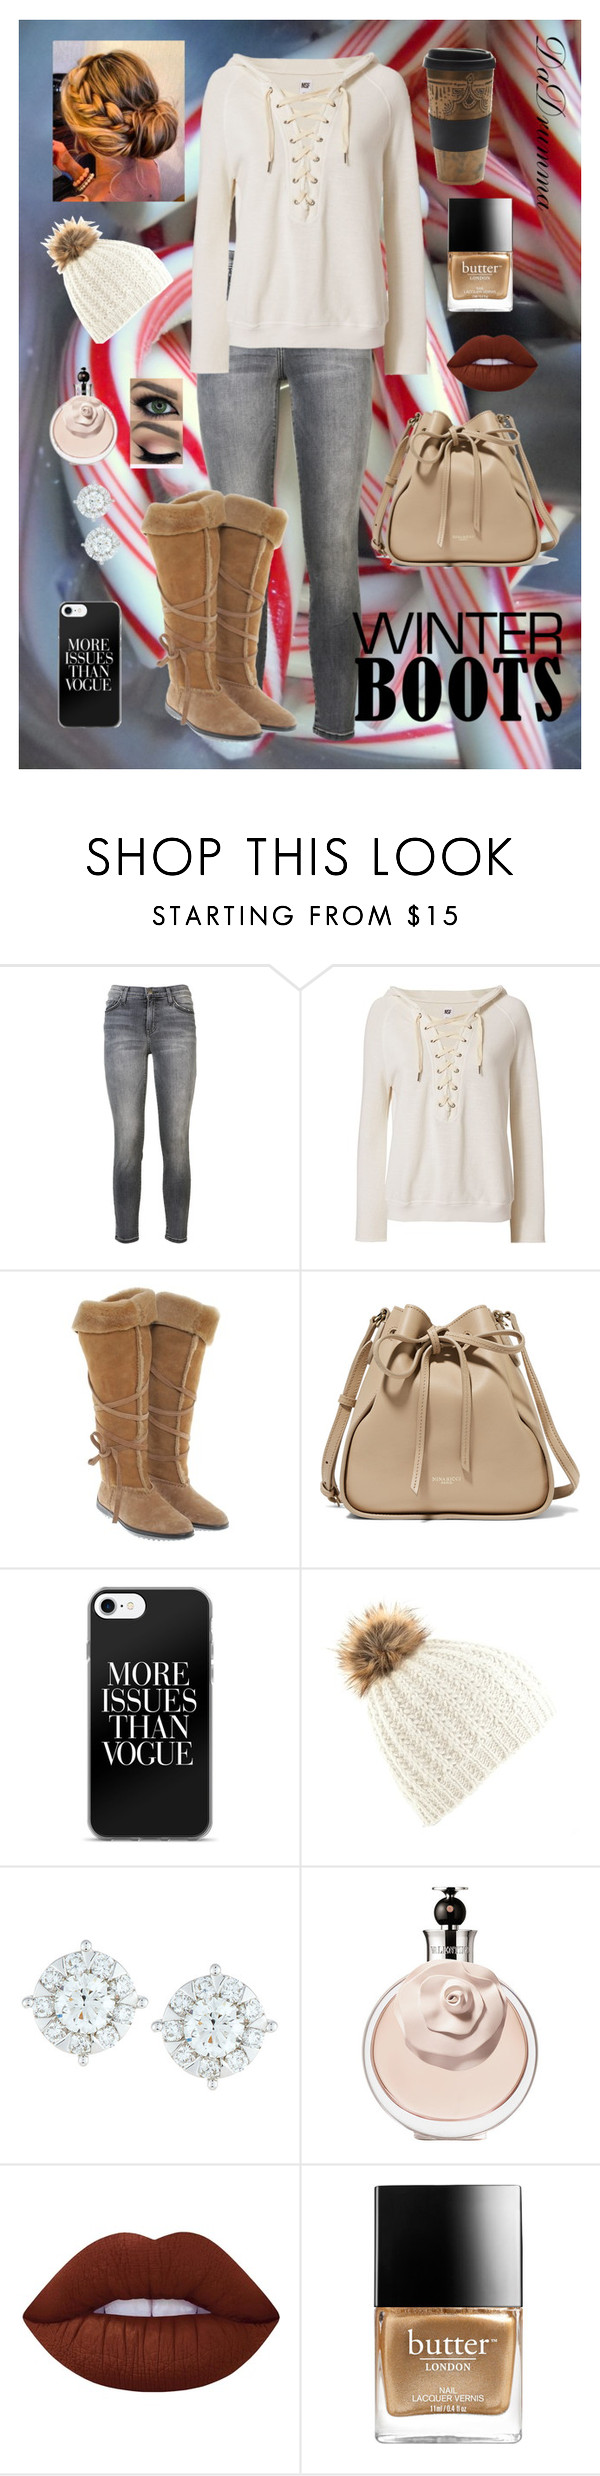 """""""Winter Coffee"""" by dadrumma on Polyvore featuring Current/Elliott, NSF, Tod's, Nina Ricci, Mémoire, Lime Crime, Butter London, Free People and winterboots"""